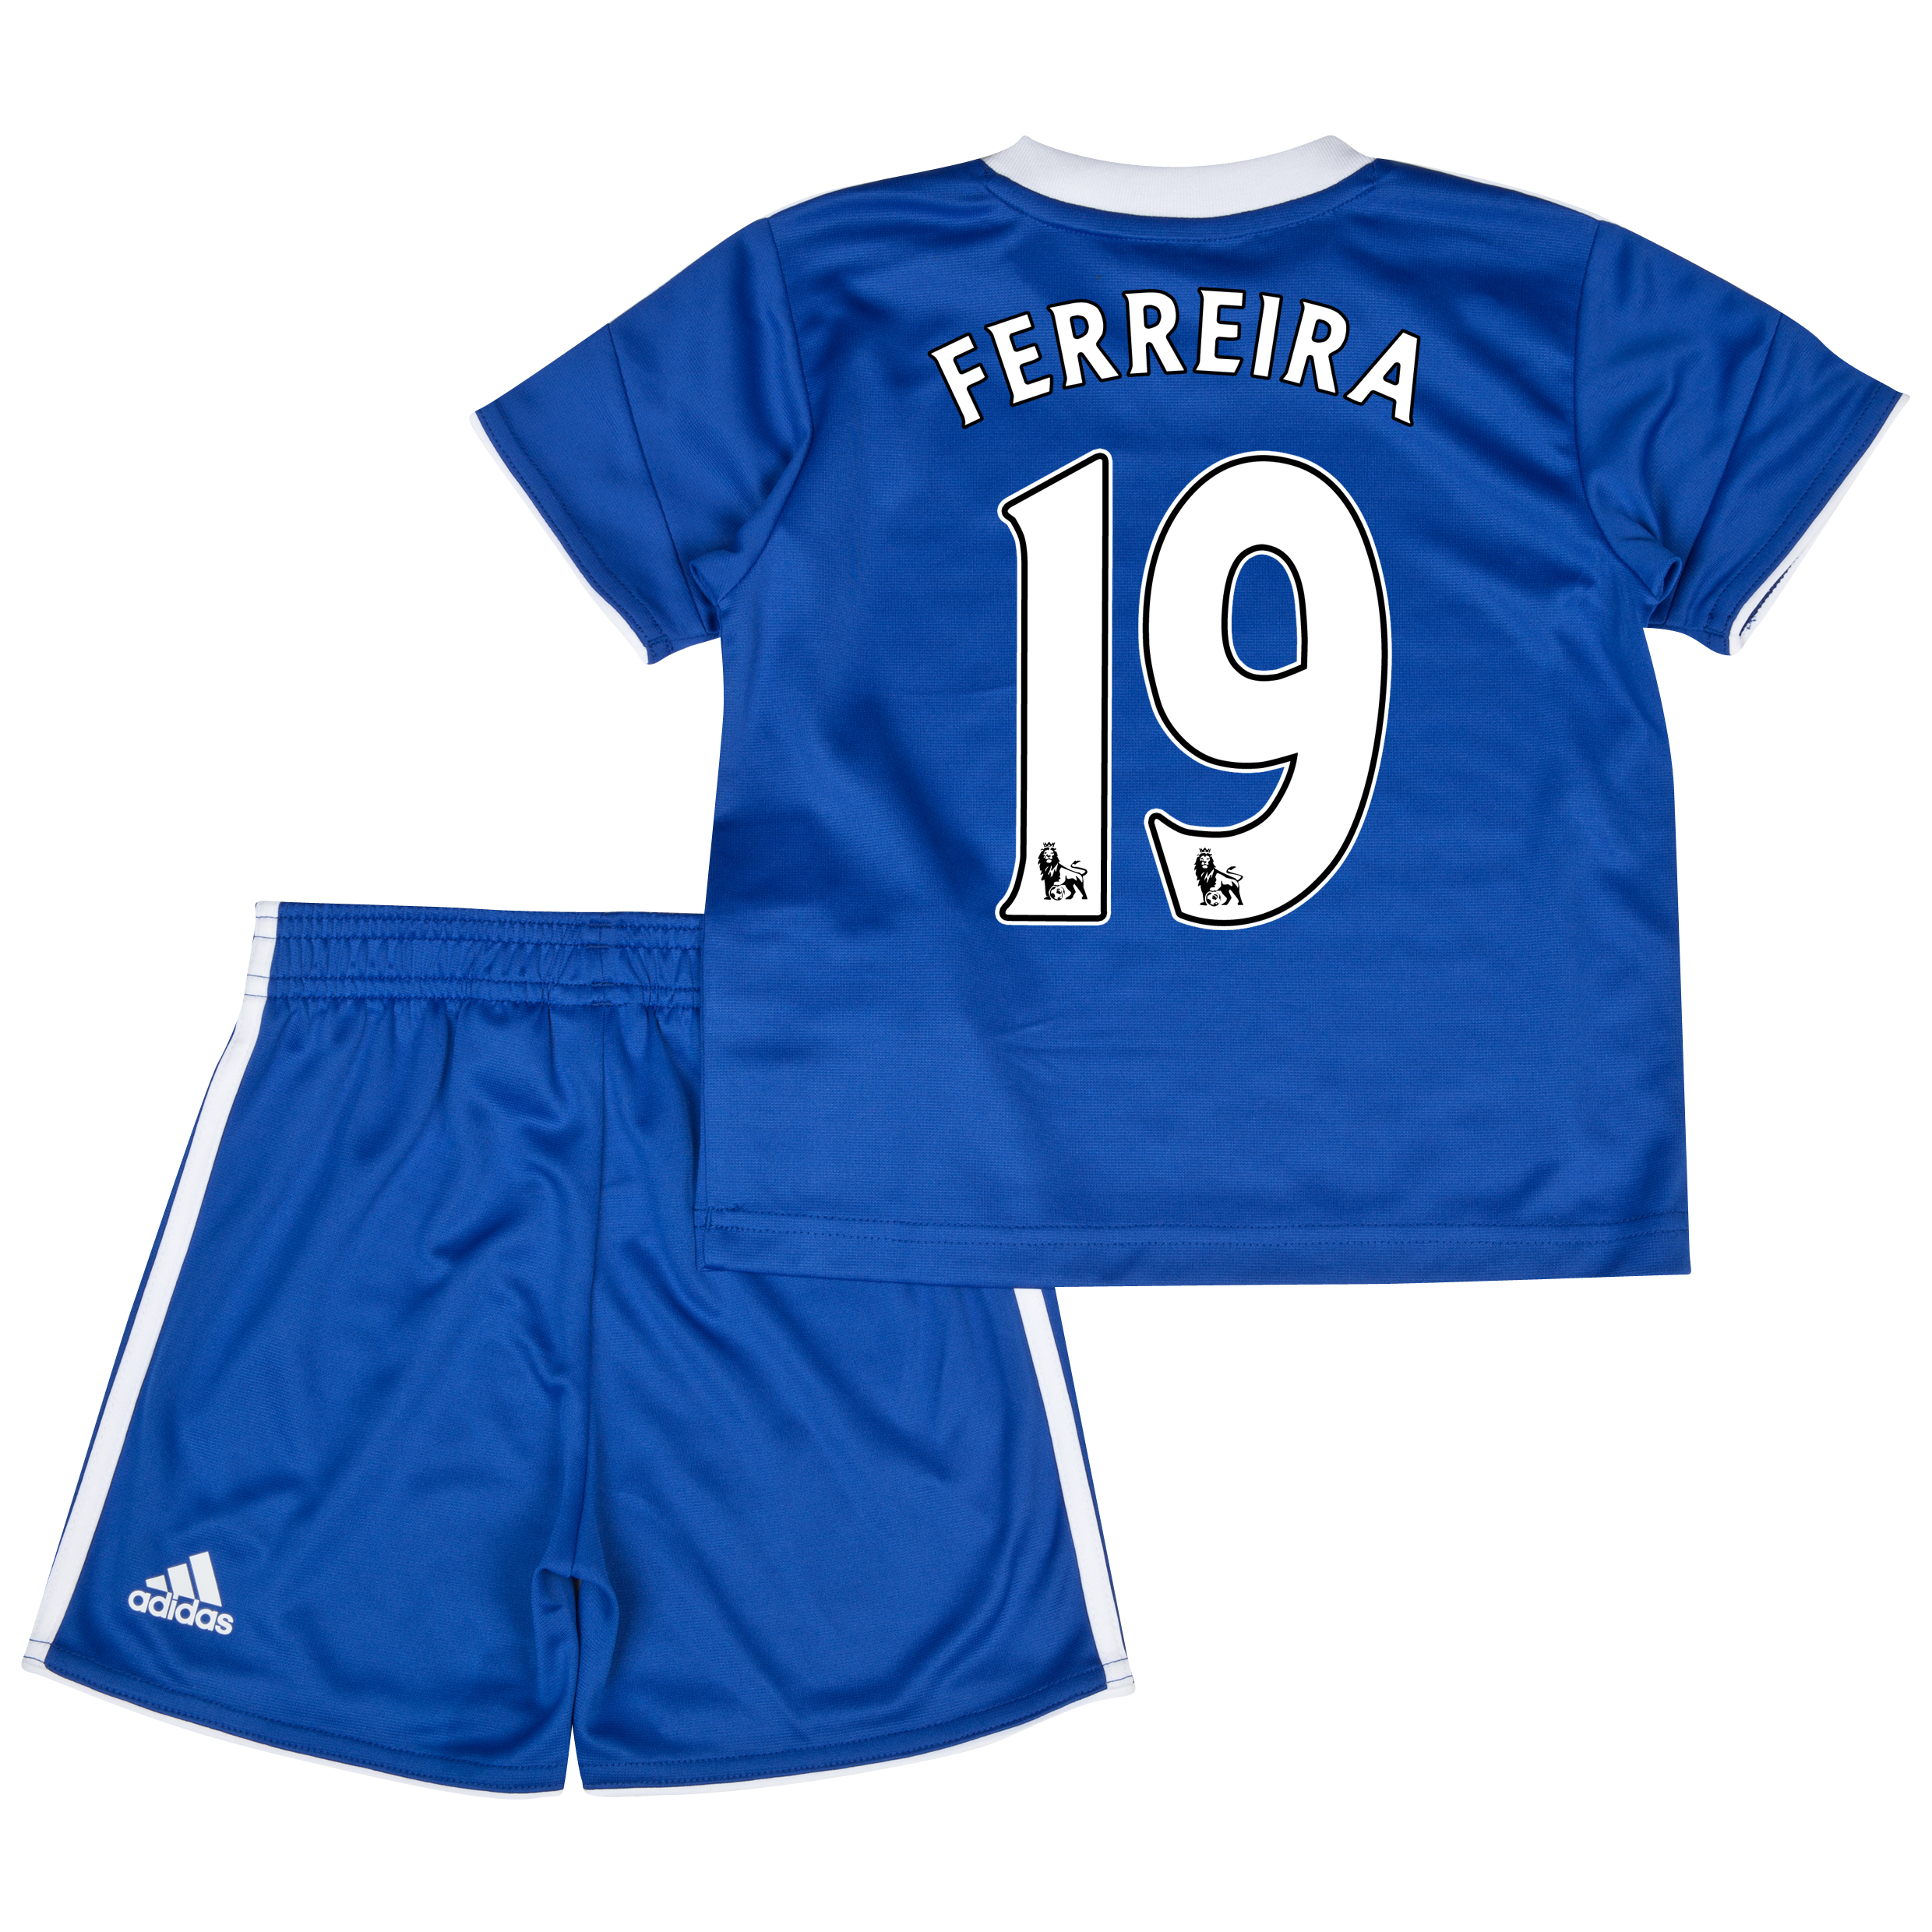 Chelsea Home Mini Kit 2013/14 with Ferreira 19 printing